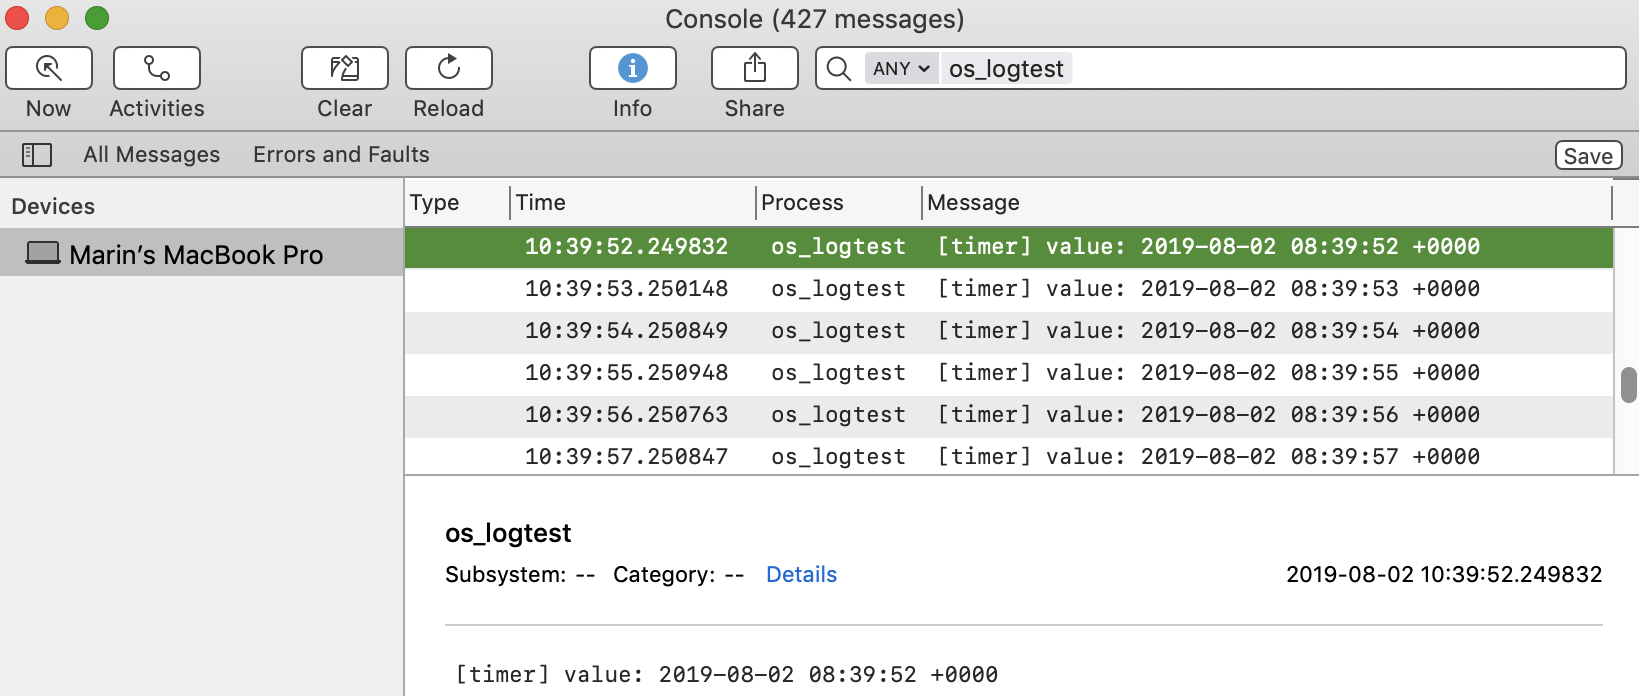 Console.app showing the custom operator log messages